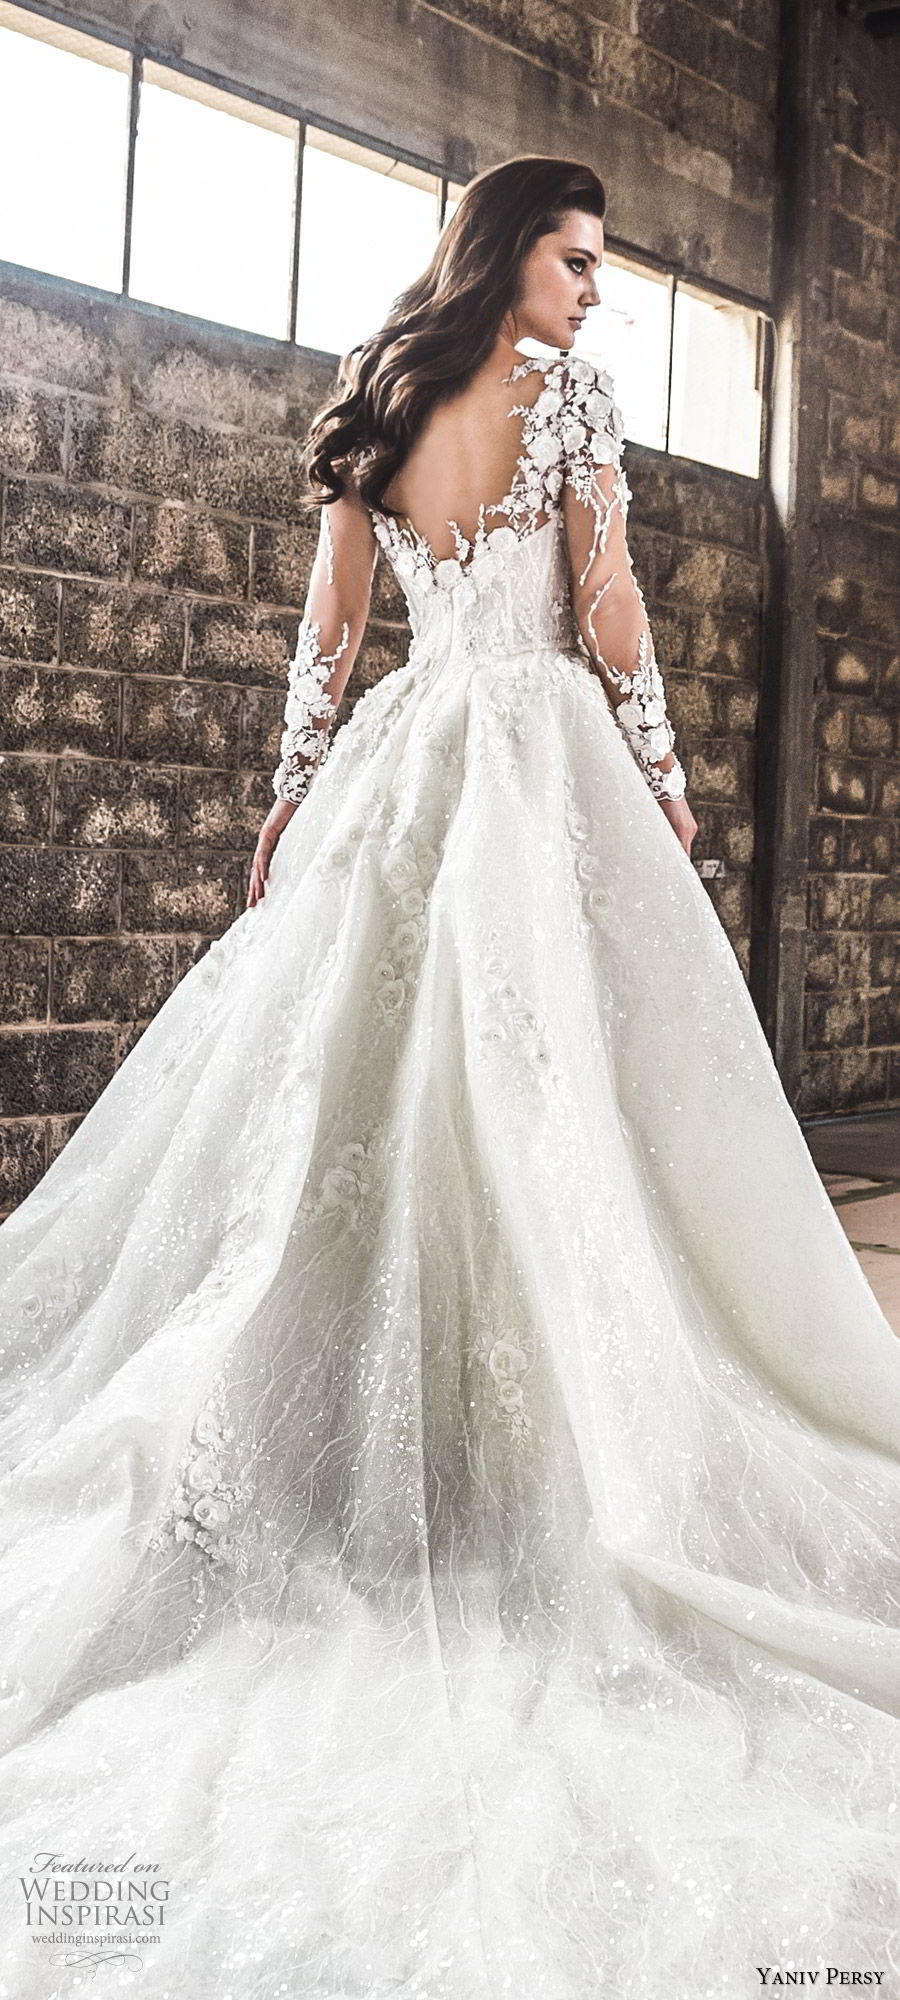 yaniv persy spring 2020 bridal couture illusion long sleeves sheer v neck sweetheart neckline heavily embellished a line ball gown wedding dress (1) cathedral train romantic zbv